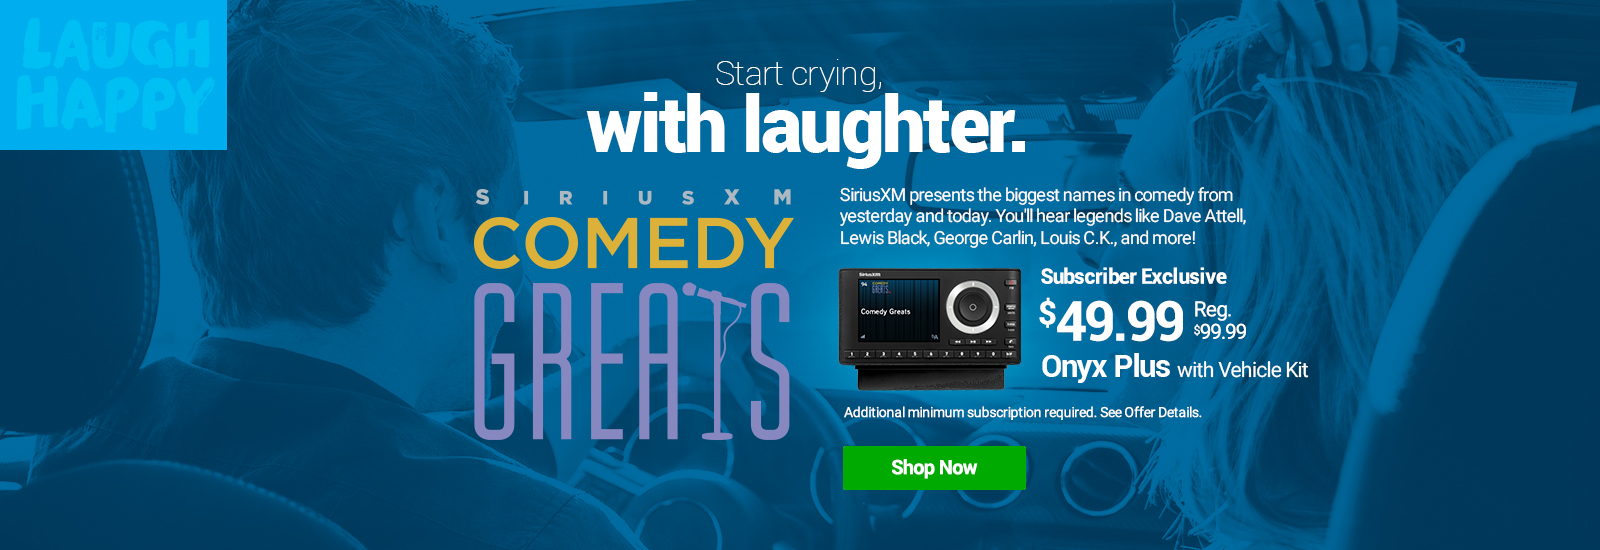 Hear Comedy Greats On SiriusXM with Onyx Plus with Vehicle Kit Radio